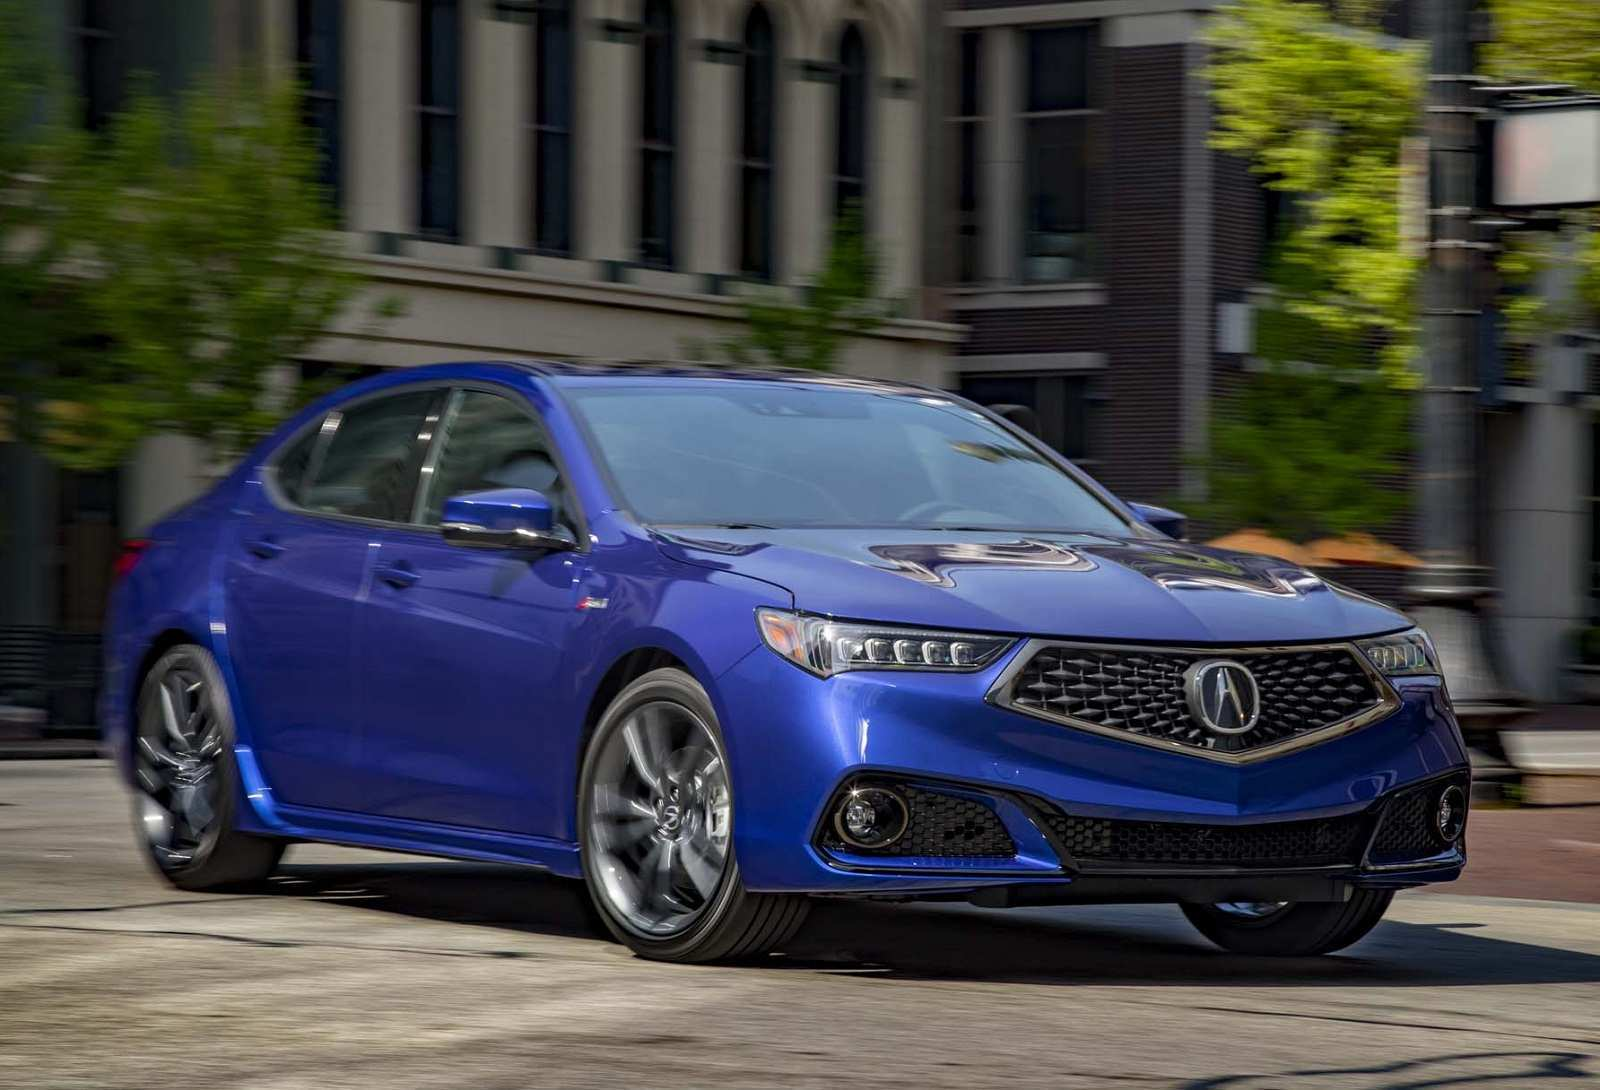 27 Best Review 2019 Acura Tlx Rumors Prices with 2019 Acura Tlx Rumors